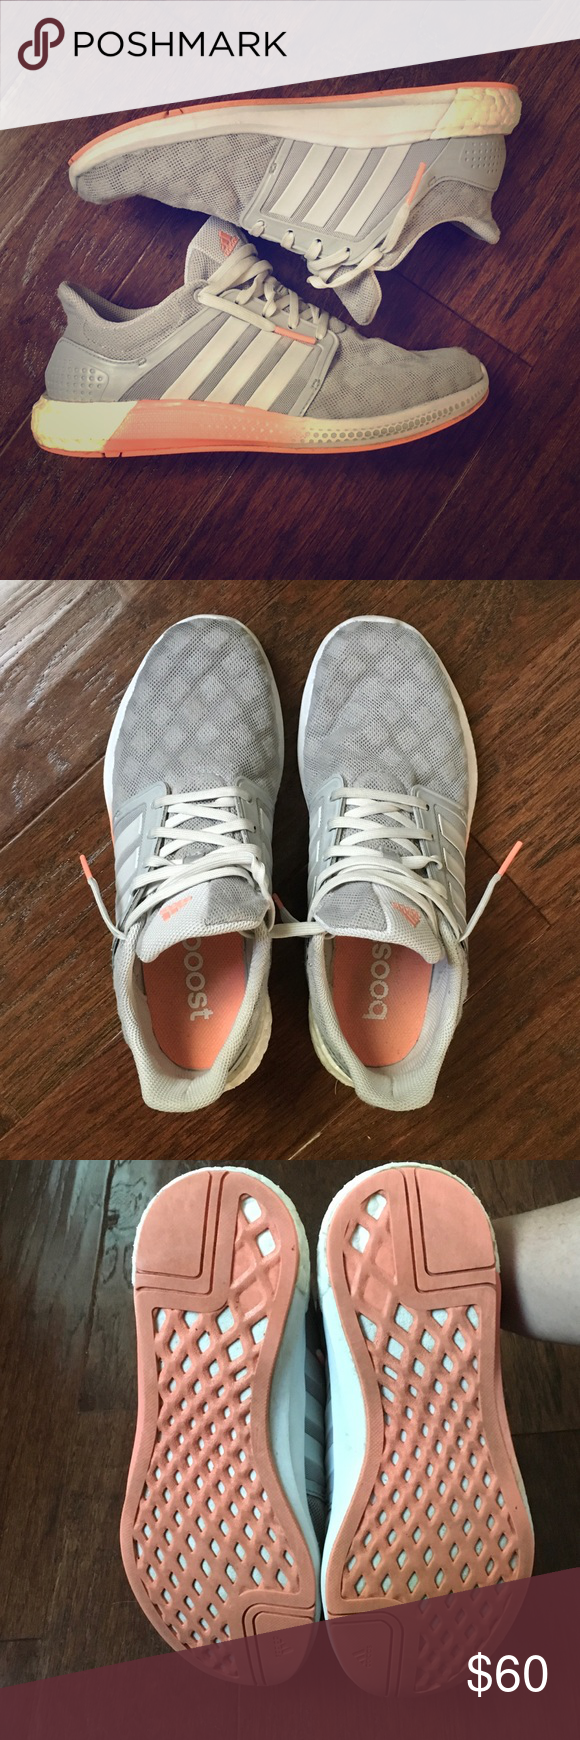 🆕ADIDAS Boost Women's Size 7.5 fits like 8 Excellent condition! Only worn a handful of times (I have a few pair). These run a little big - I am a very consistent 8 but wear a 7.5 in these. Adidas Running Solar Boost - Light gray with coral soles. Very lightweight!! A few dirt smudges here and there that are hardly noticeable at all (see pics). Only slight wear on the soles (see pic)! Some discoloration/dirt on back white section and slight fray at tip of toe section - added pics! adidas…